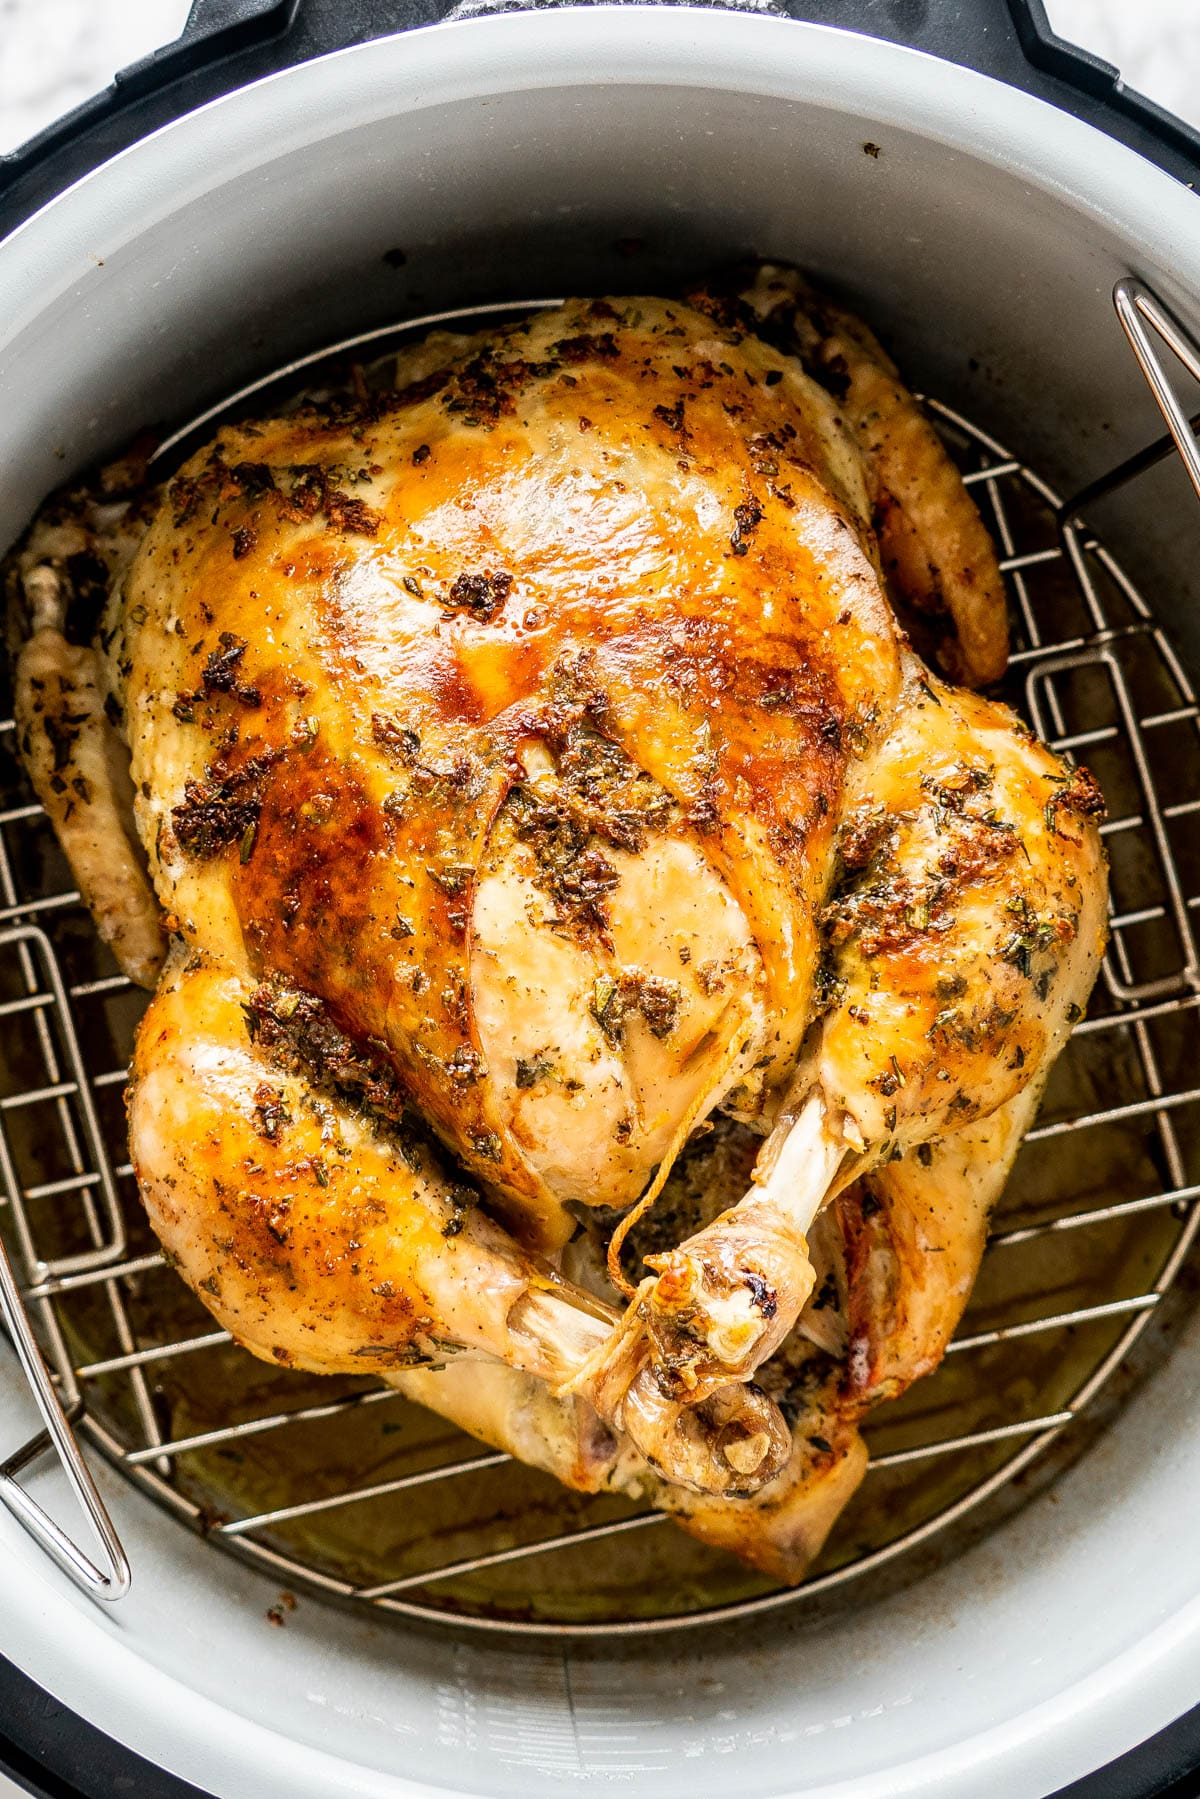 a whole chicken in a pressure cooker